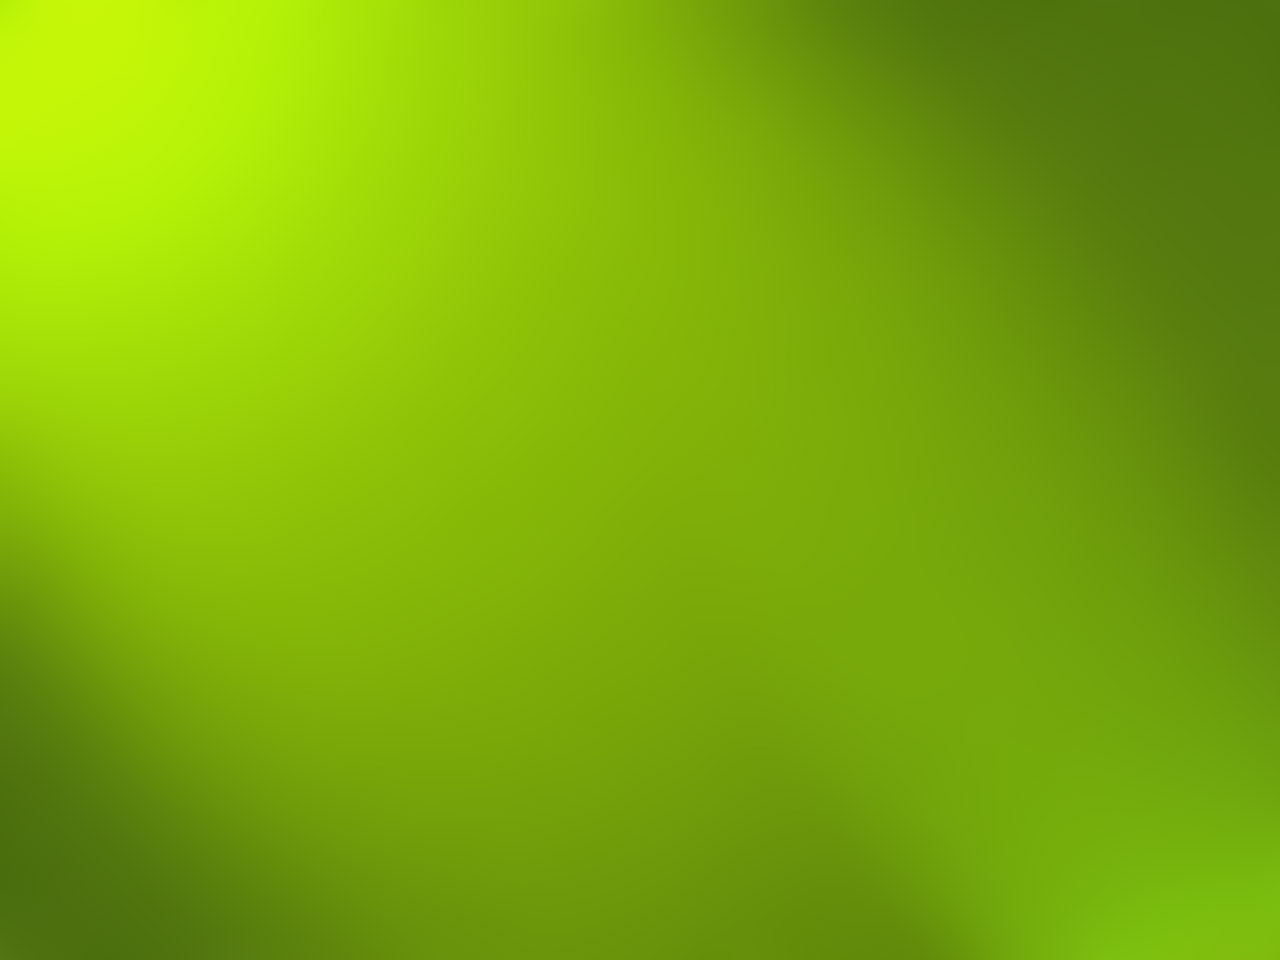 abstract_background_green